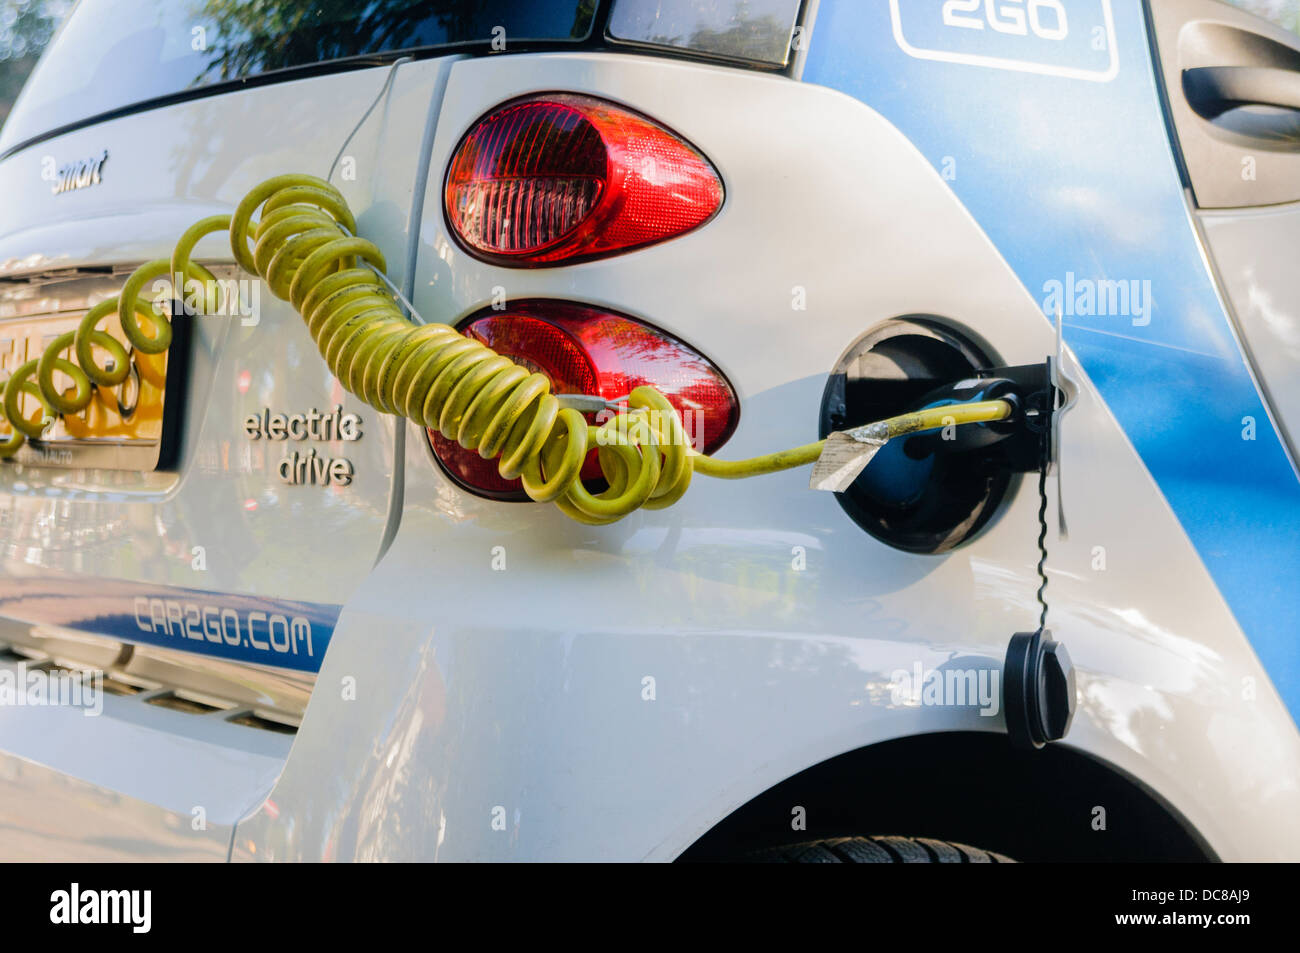 Electric car being recharged - Stock Image